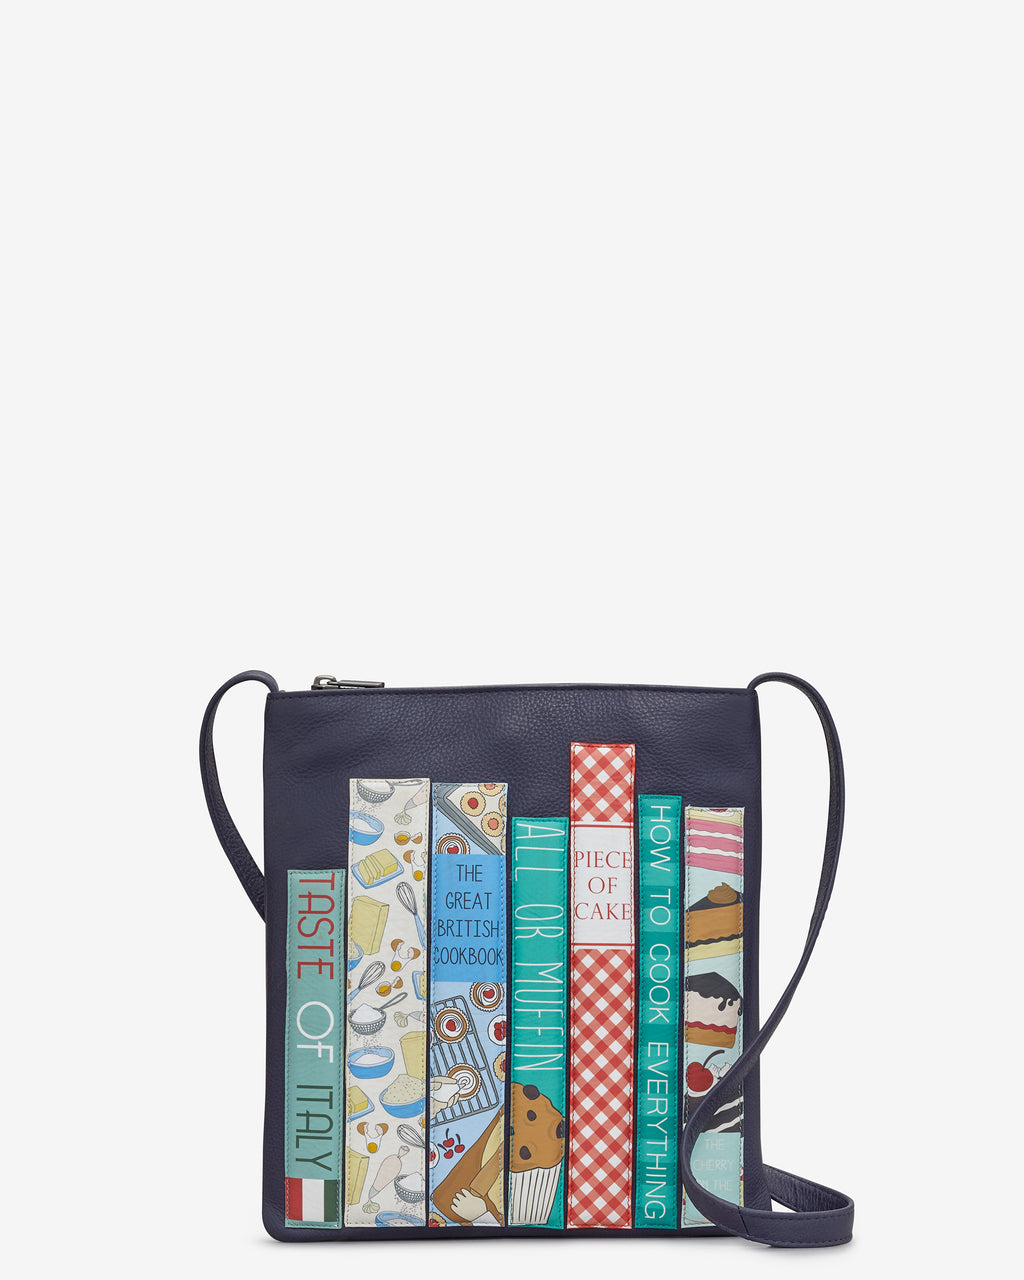 Cook Bookworm Leather Cross Body Bag